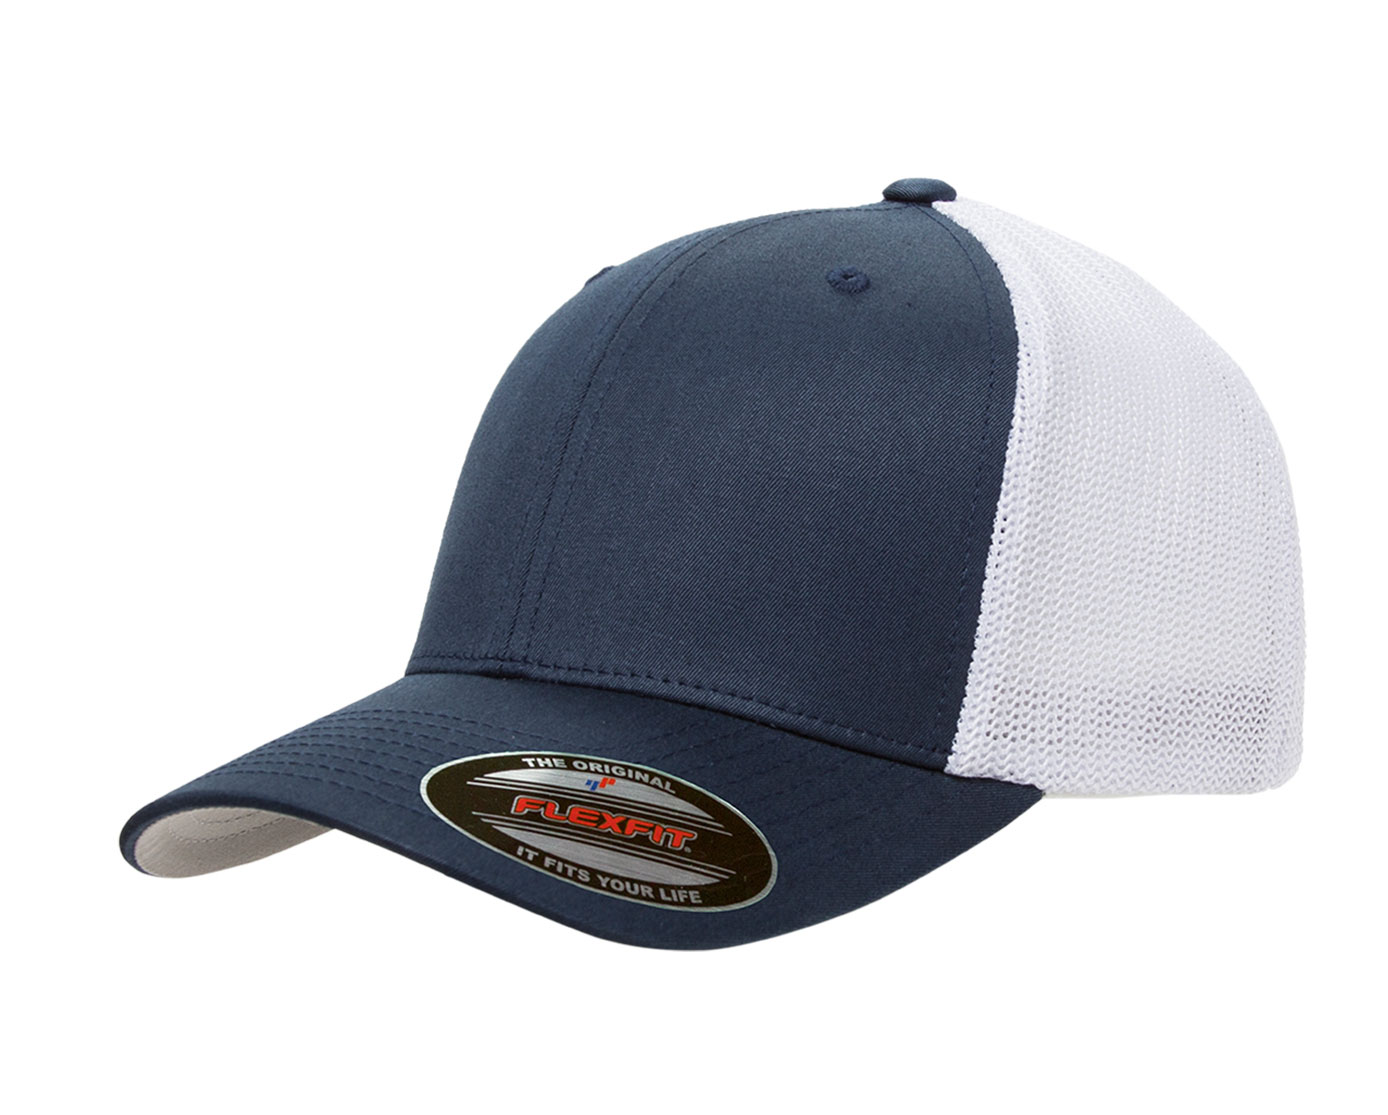 e8816cad6e02ac Yupoong Flexfit® Custom Mesh Truckers Cap - Design Online or Buy It Blank